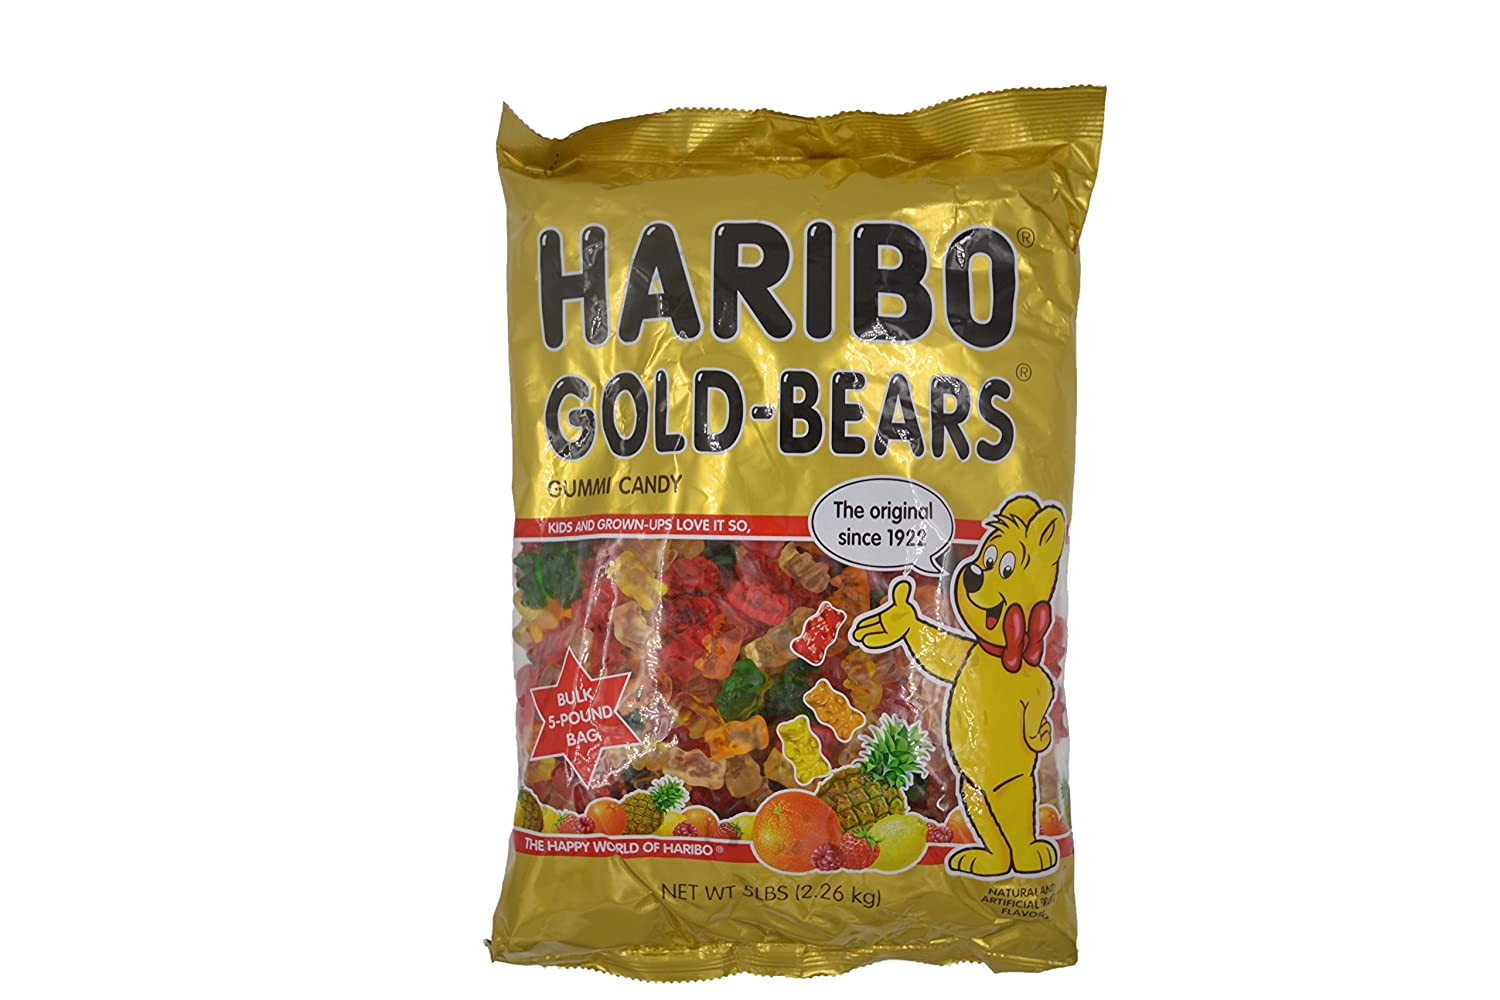 Haribo gummy bears are just one of many products that thomas - 81yuisrcmnl _sl1500_ Jpg